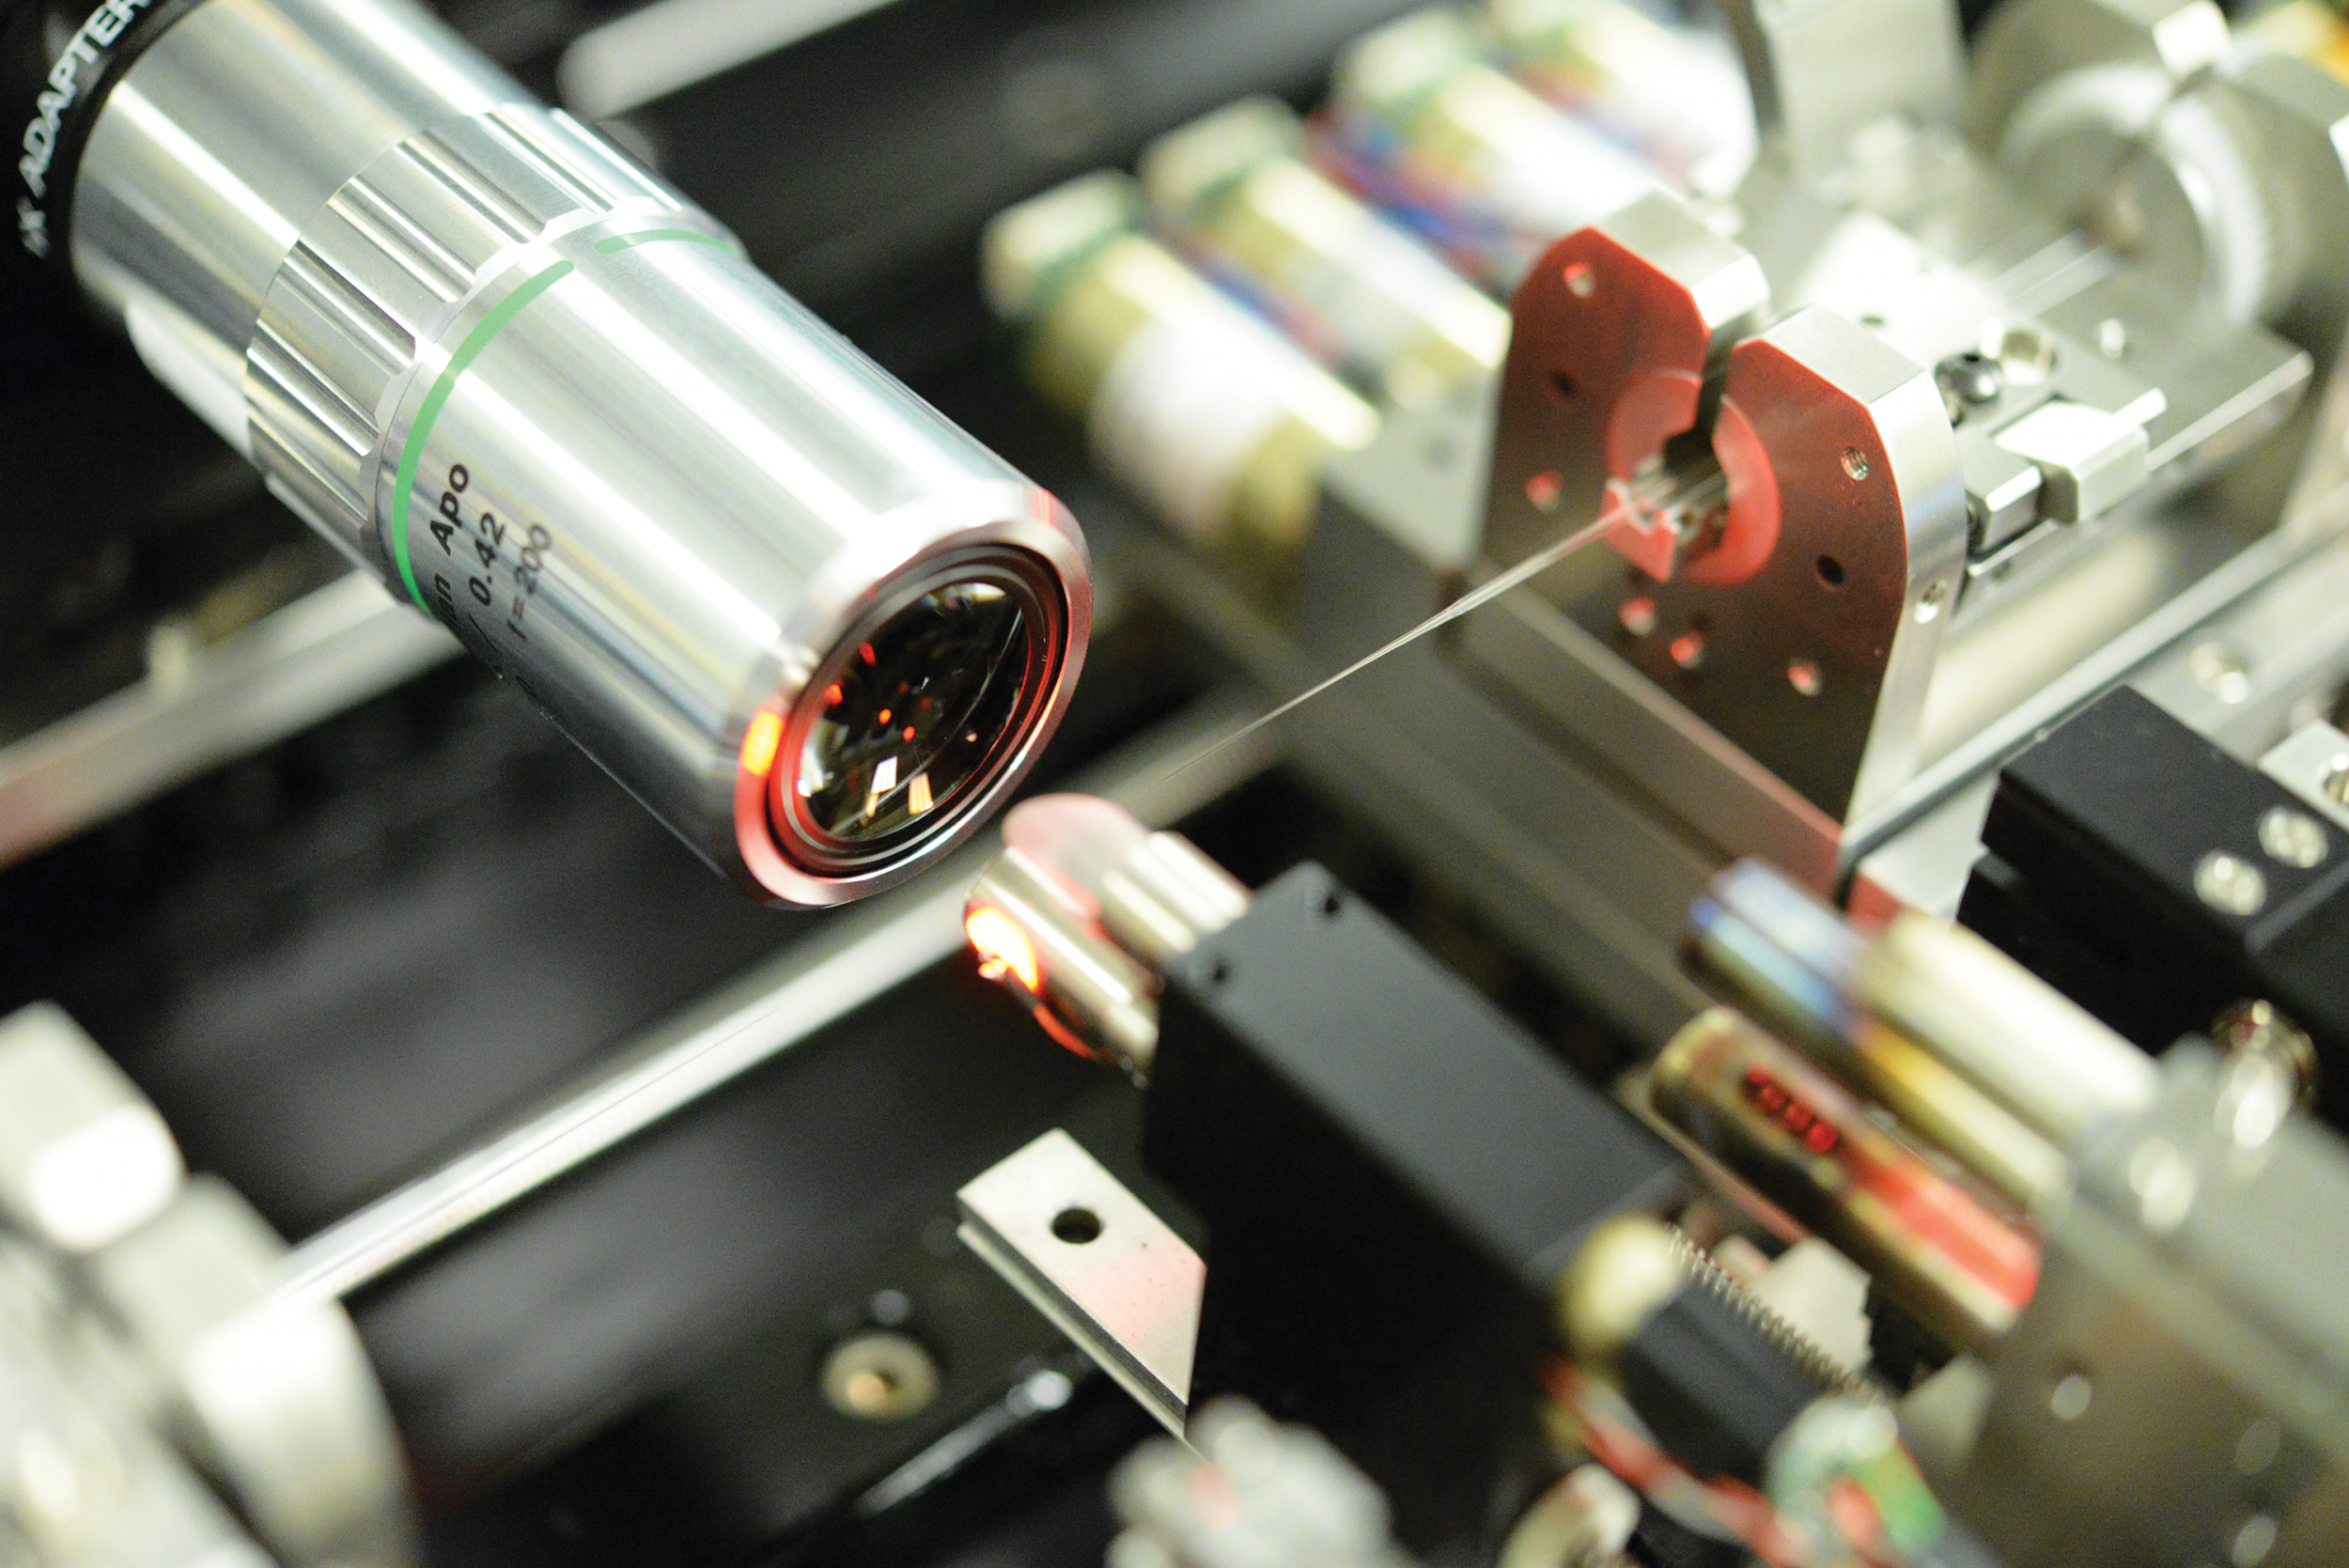 The tip of the photonic lantern is inspected with a microscope prior to being spliced into a kilowatt-class amplifier.